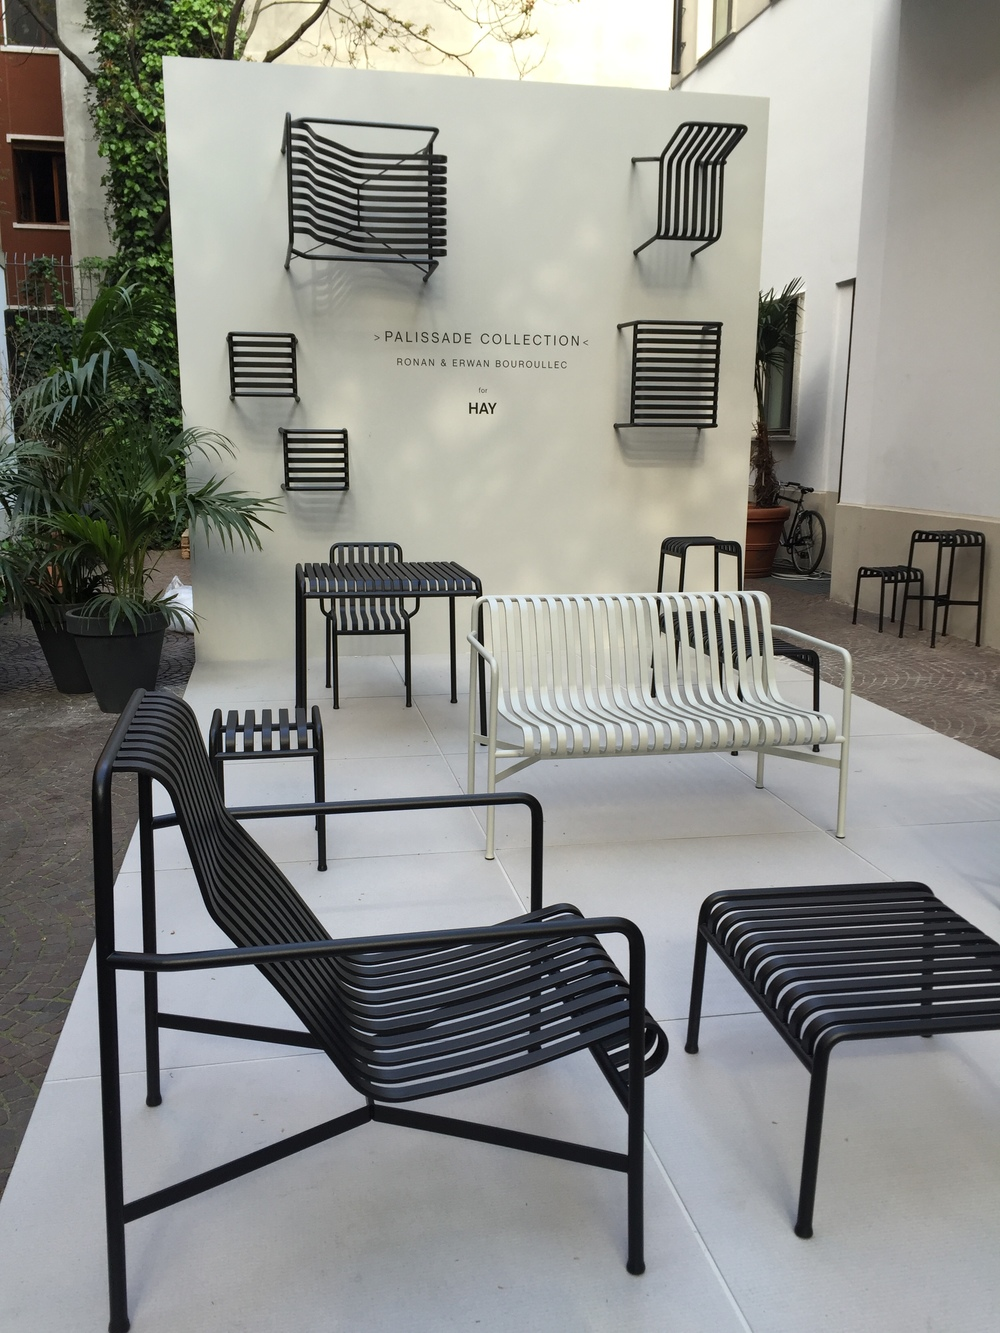 Ronan and Erwan Bouroullec's  Palissade Collection  of outdoor furniture for Hay looked good.